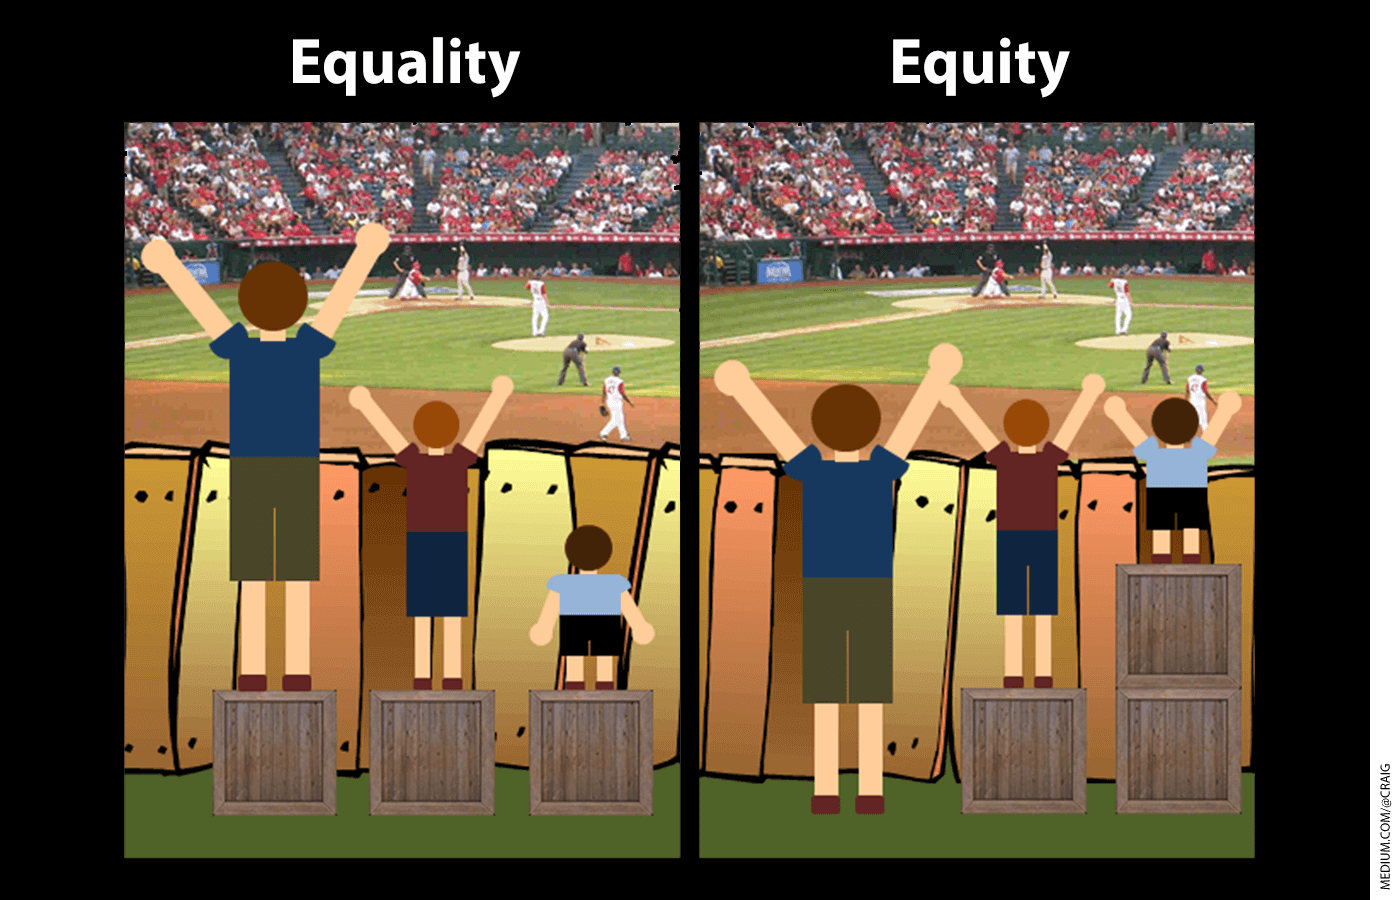 Illustration depicting the difference between equality and equity